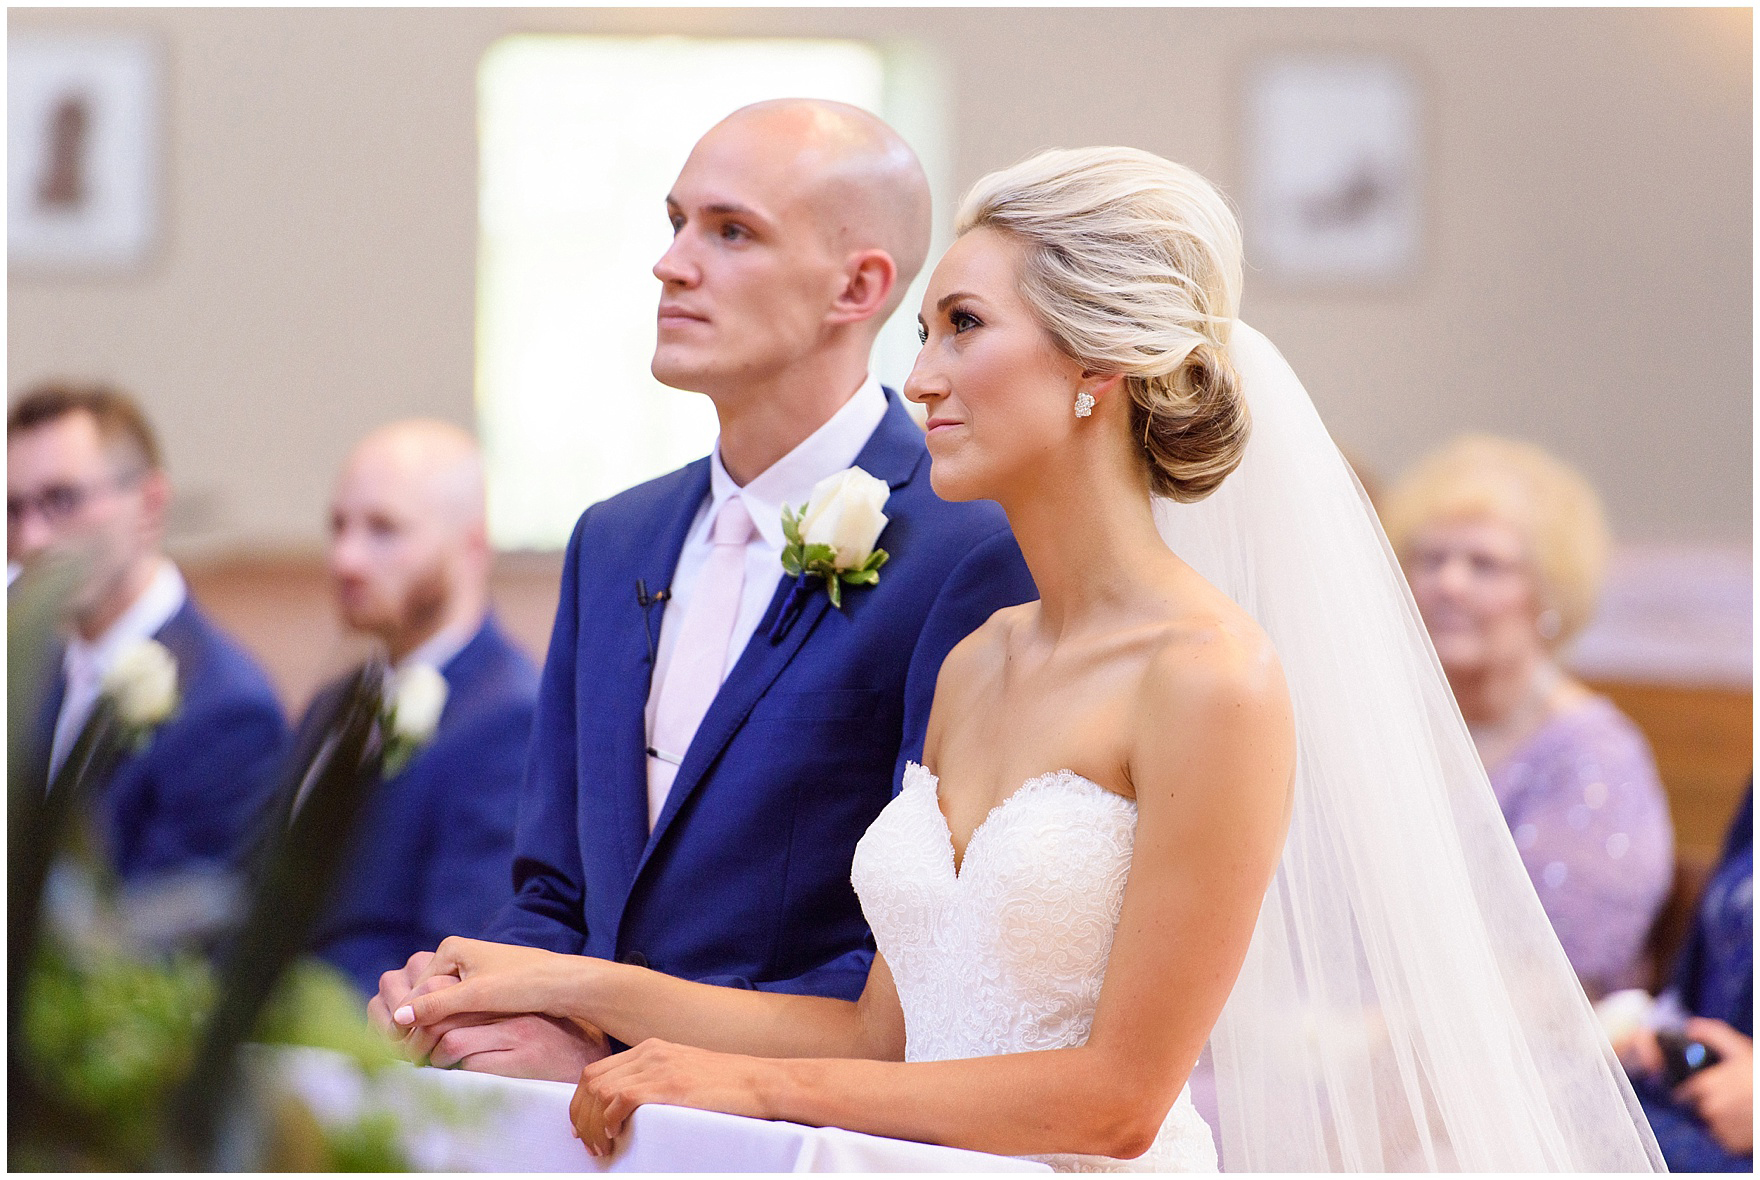 The bride and groom hold hands during the ceremony for a St. Josephs Downers Grove Pinstripes Oak Brook, Illinois wedding.